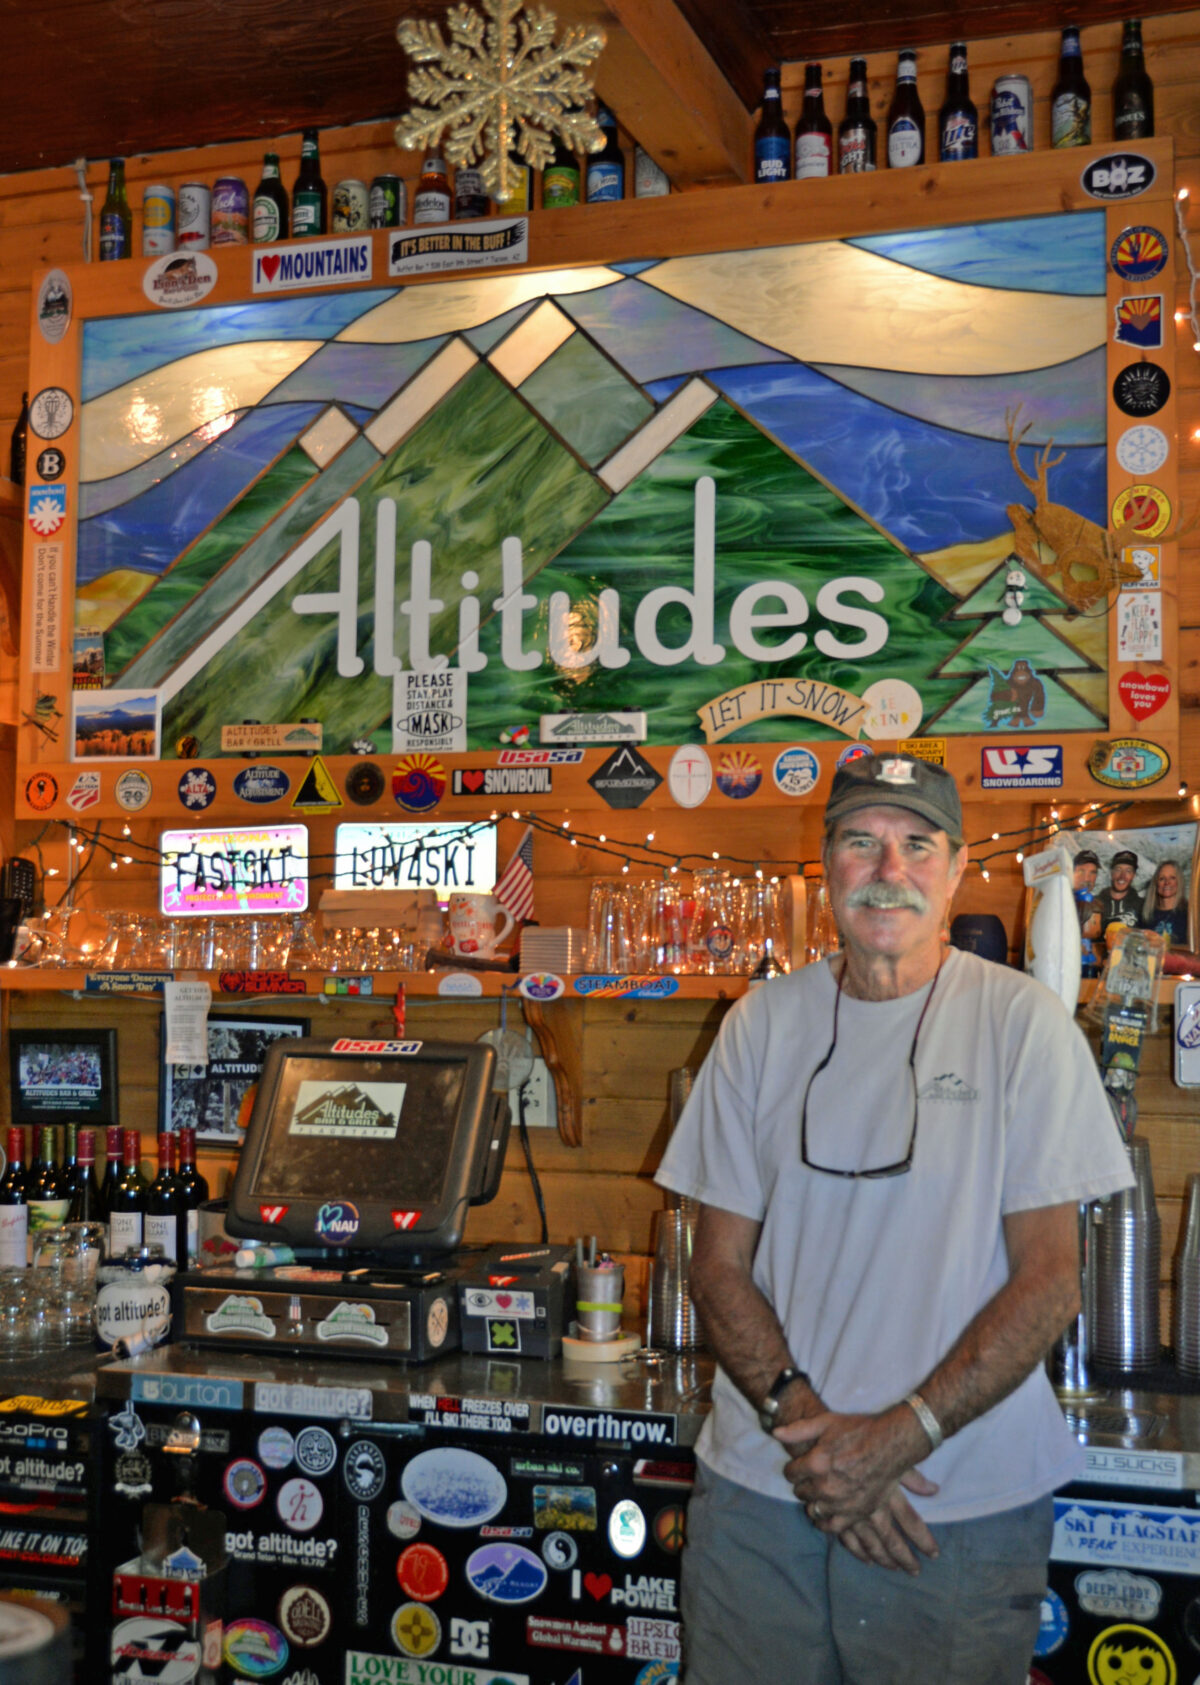 Celebrating 18 years, Altitudes Bar & Grill continues the tradition of comfort food, cold beer and live music